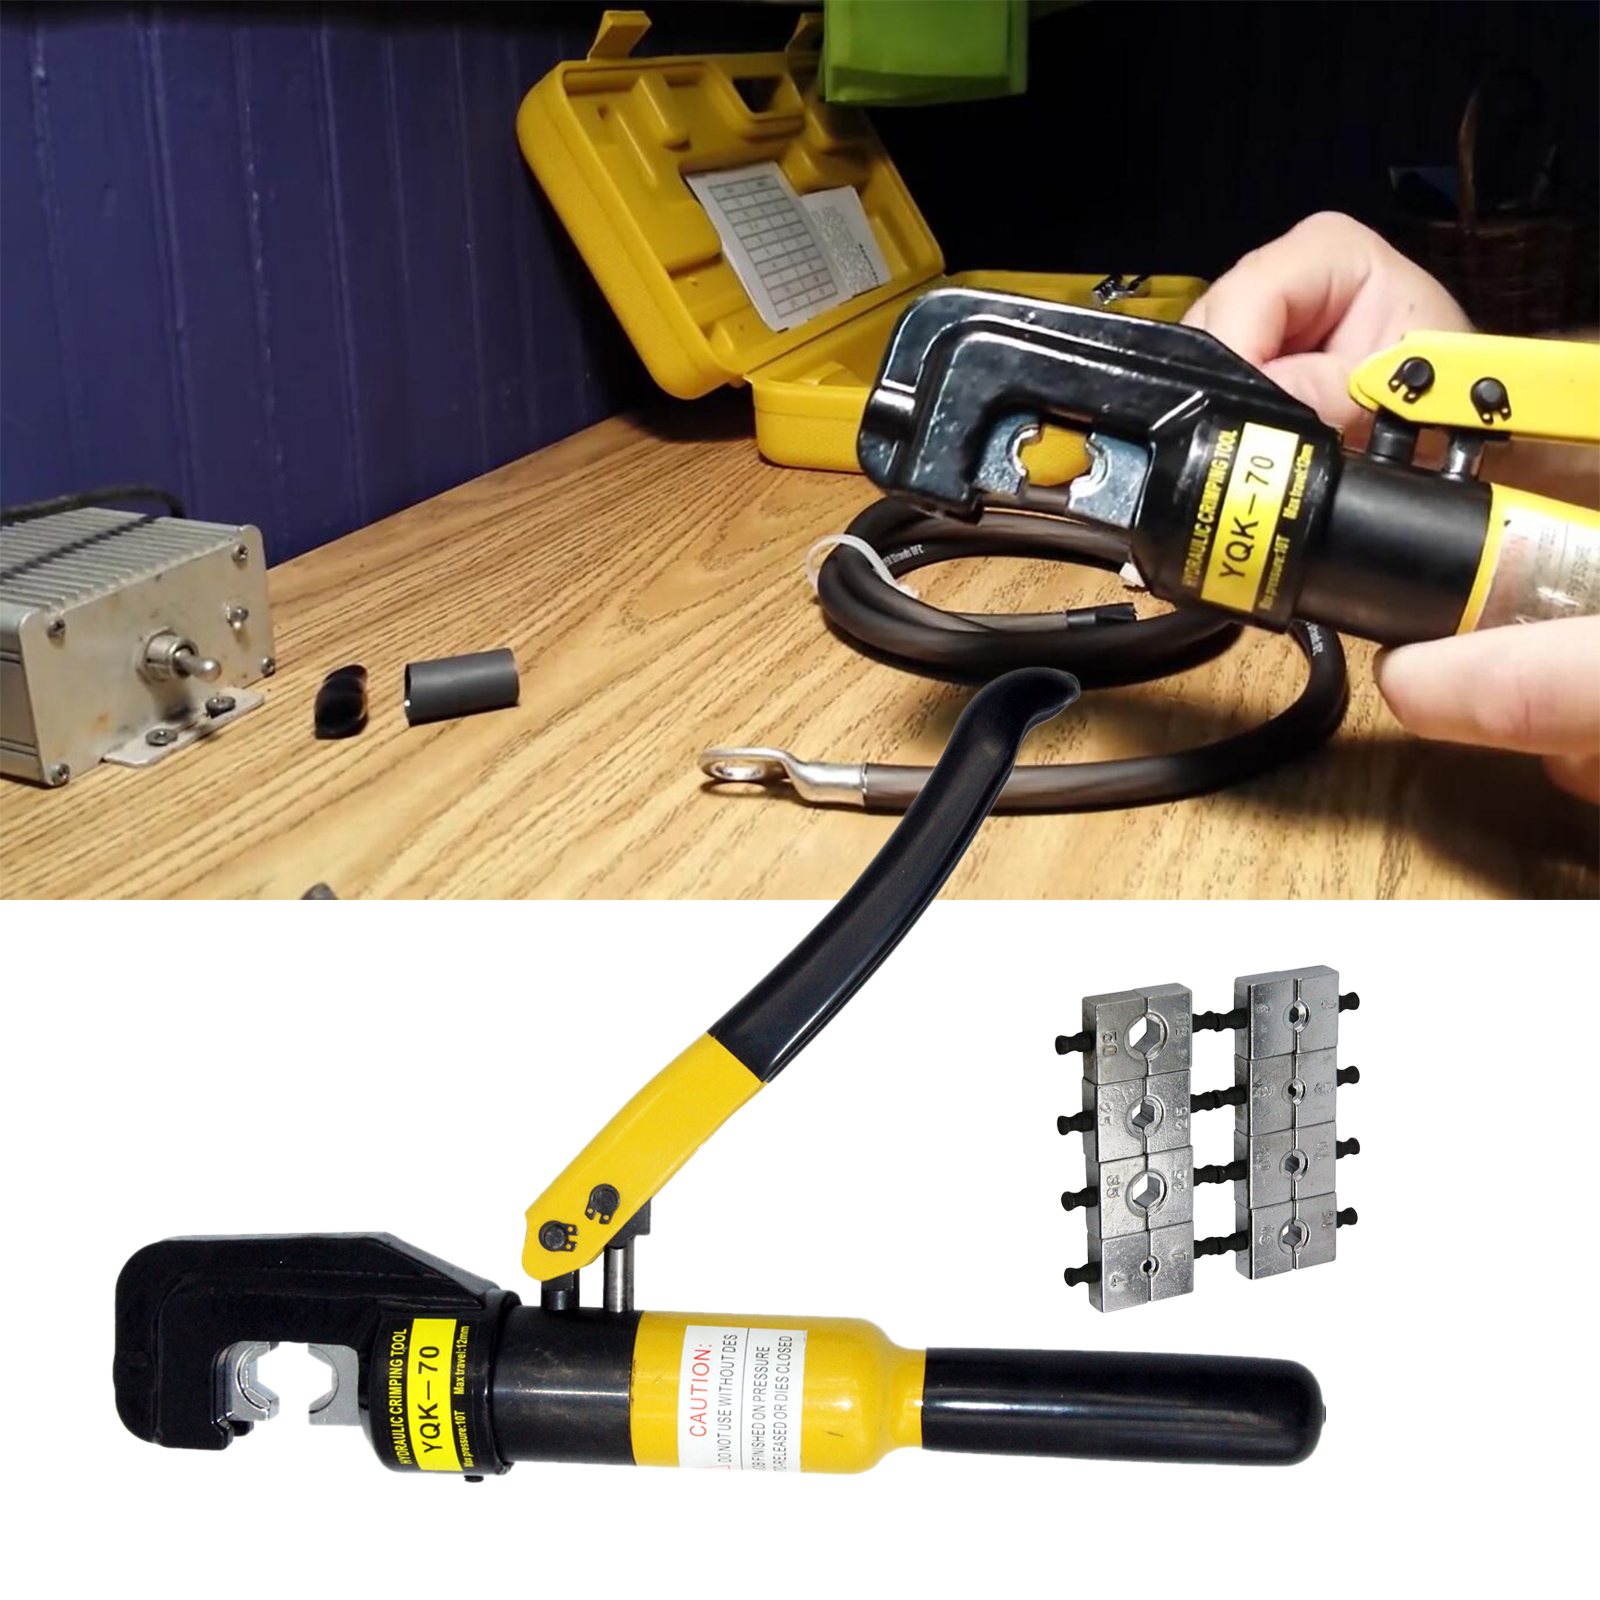 10 Ton Hydraulic Wire Battery Cable Lug Terminal Crimper Crimping Tool 9 Dies by PENSON & CO.